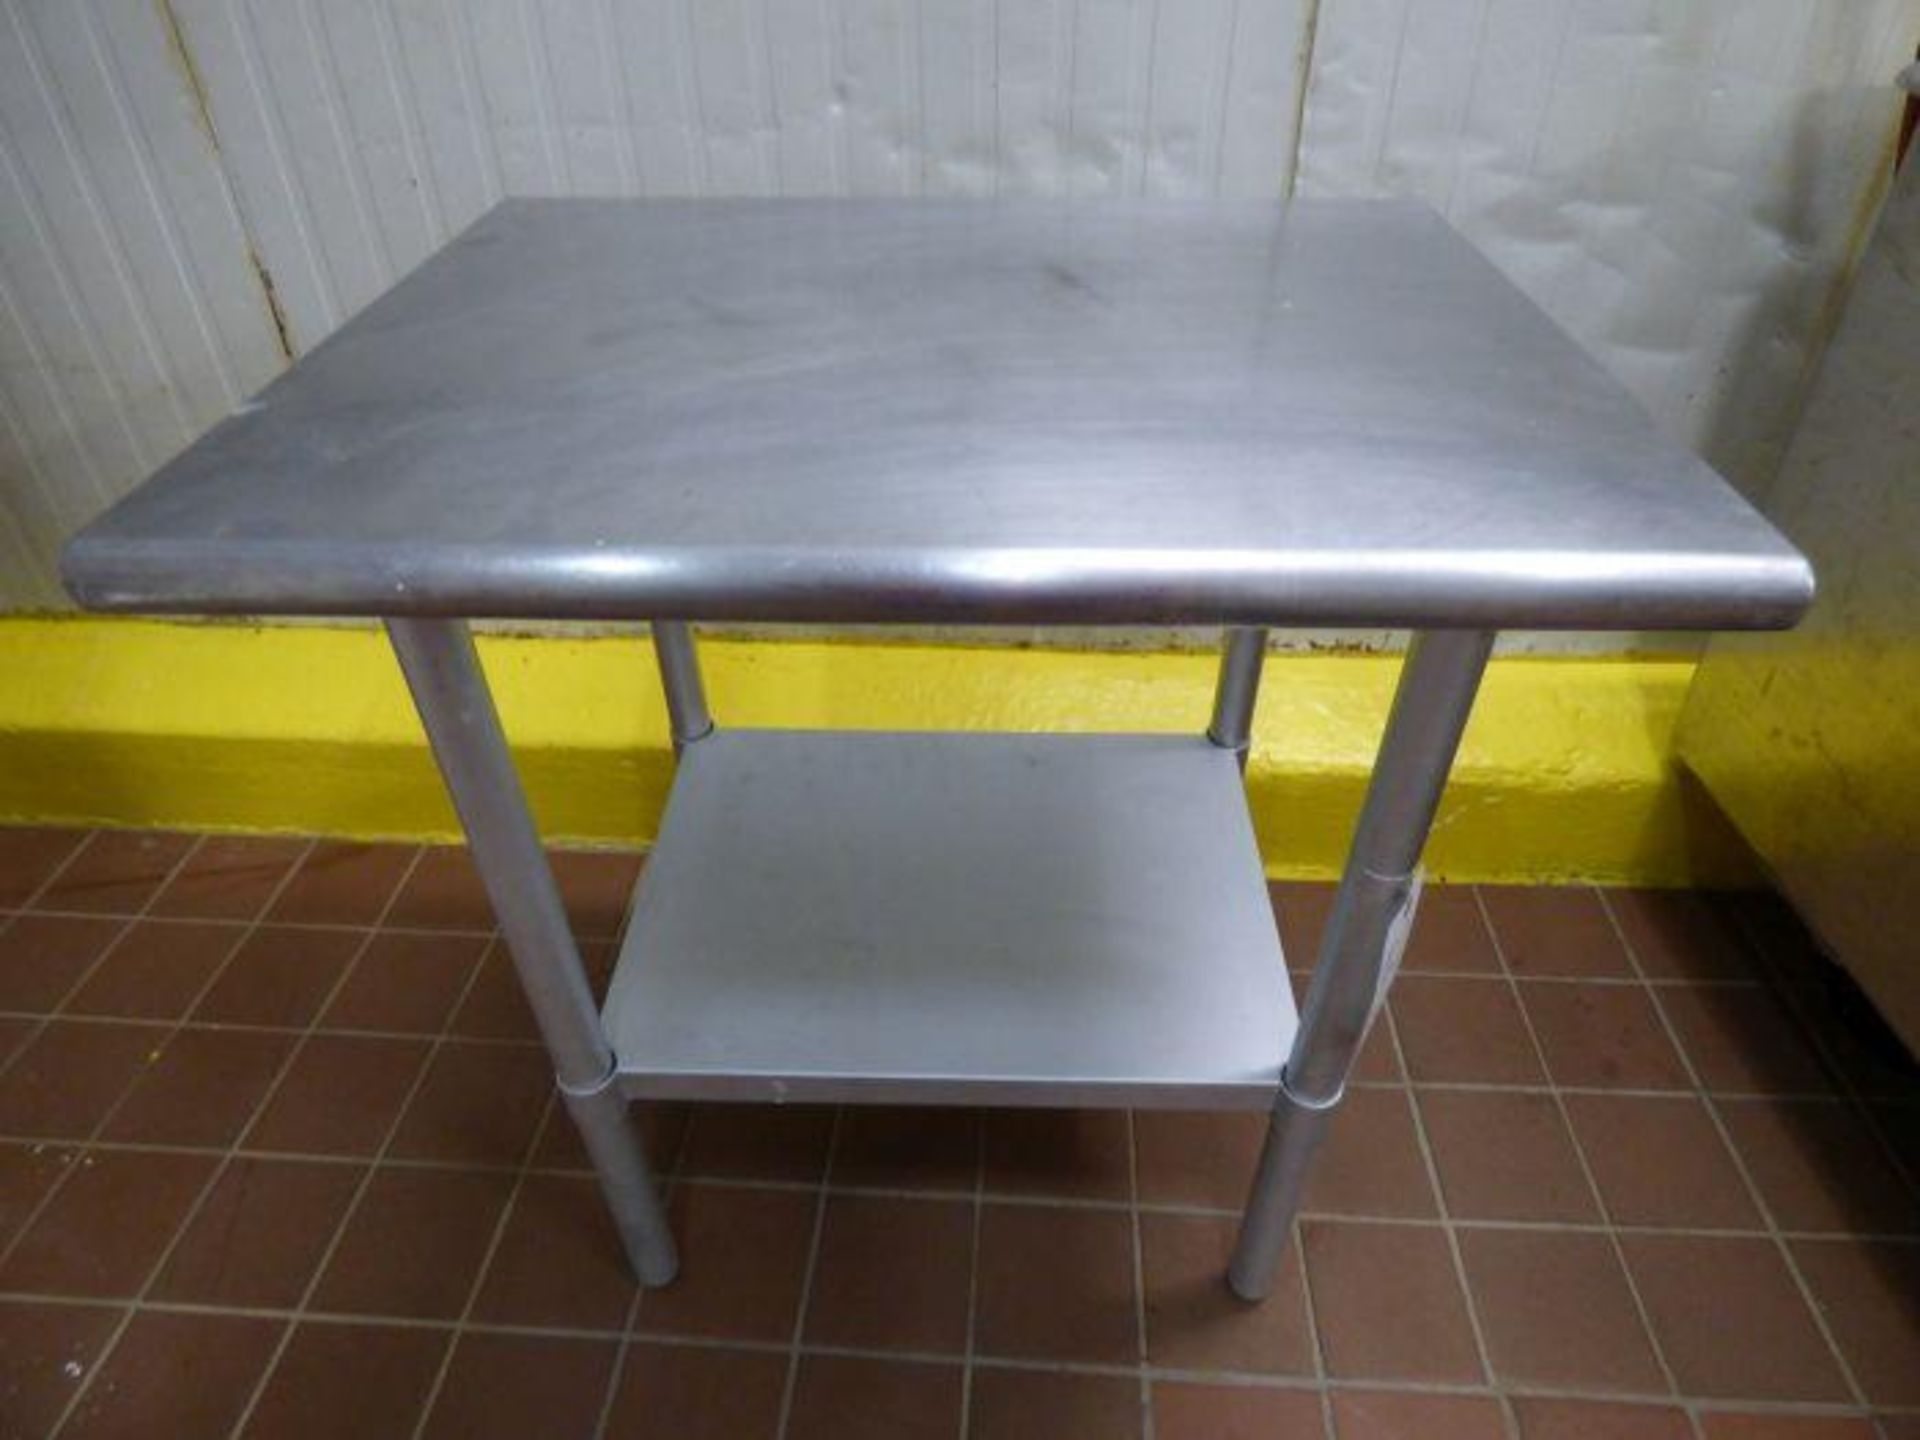 Lot 1051 - Stainless Steel Table